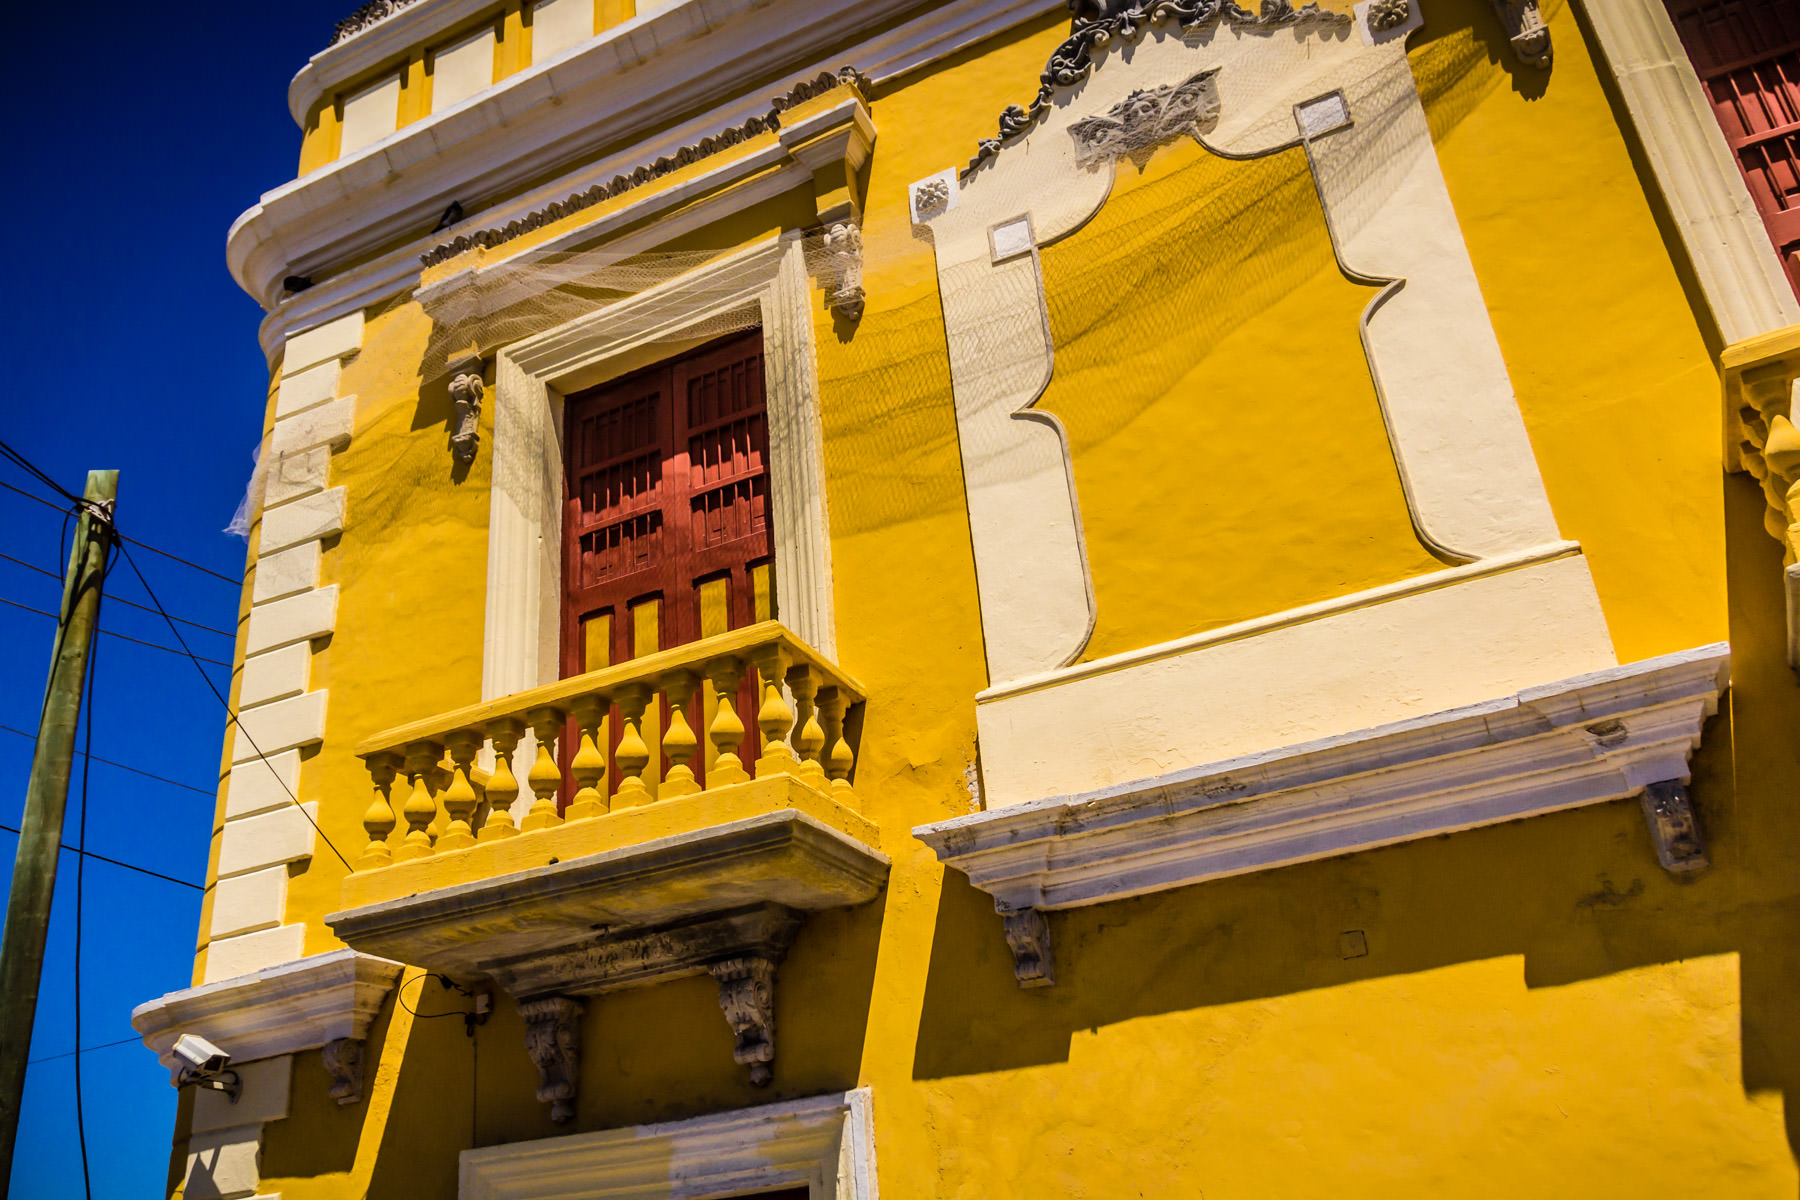 A red door on a balcony stands out against the yellow walls of its environs in Progreso de Mérida, Yucatan, Mexico.